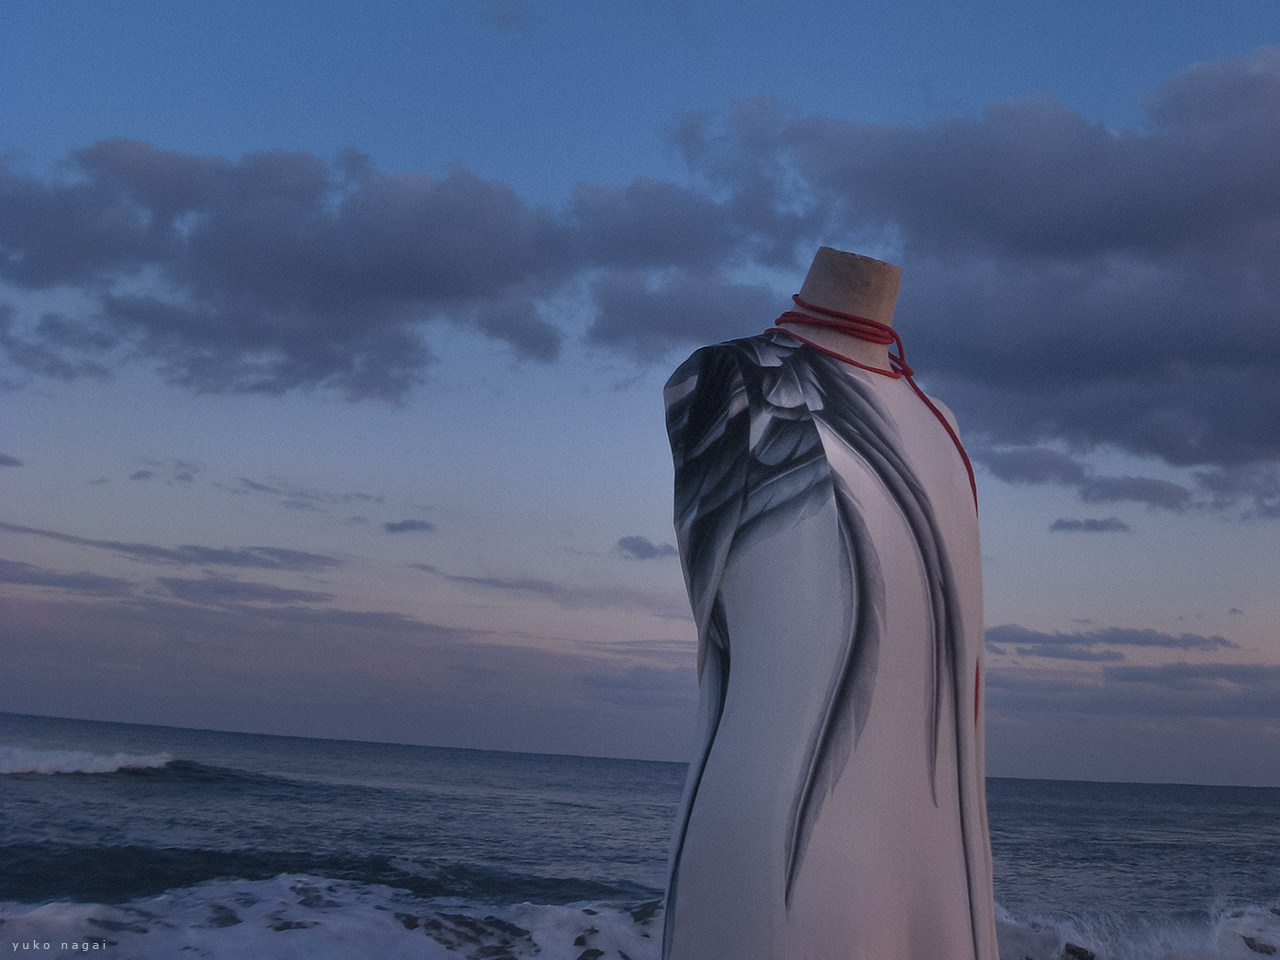 A dress with a dyed wing on the shore.